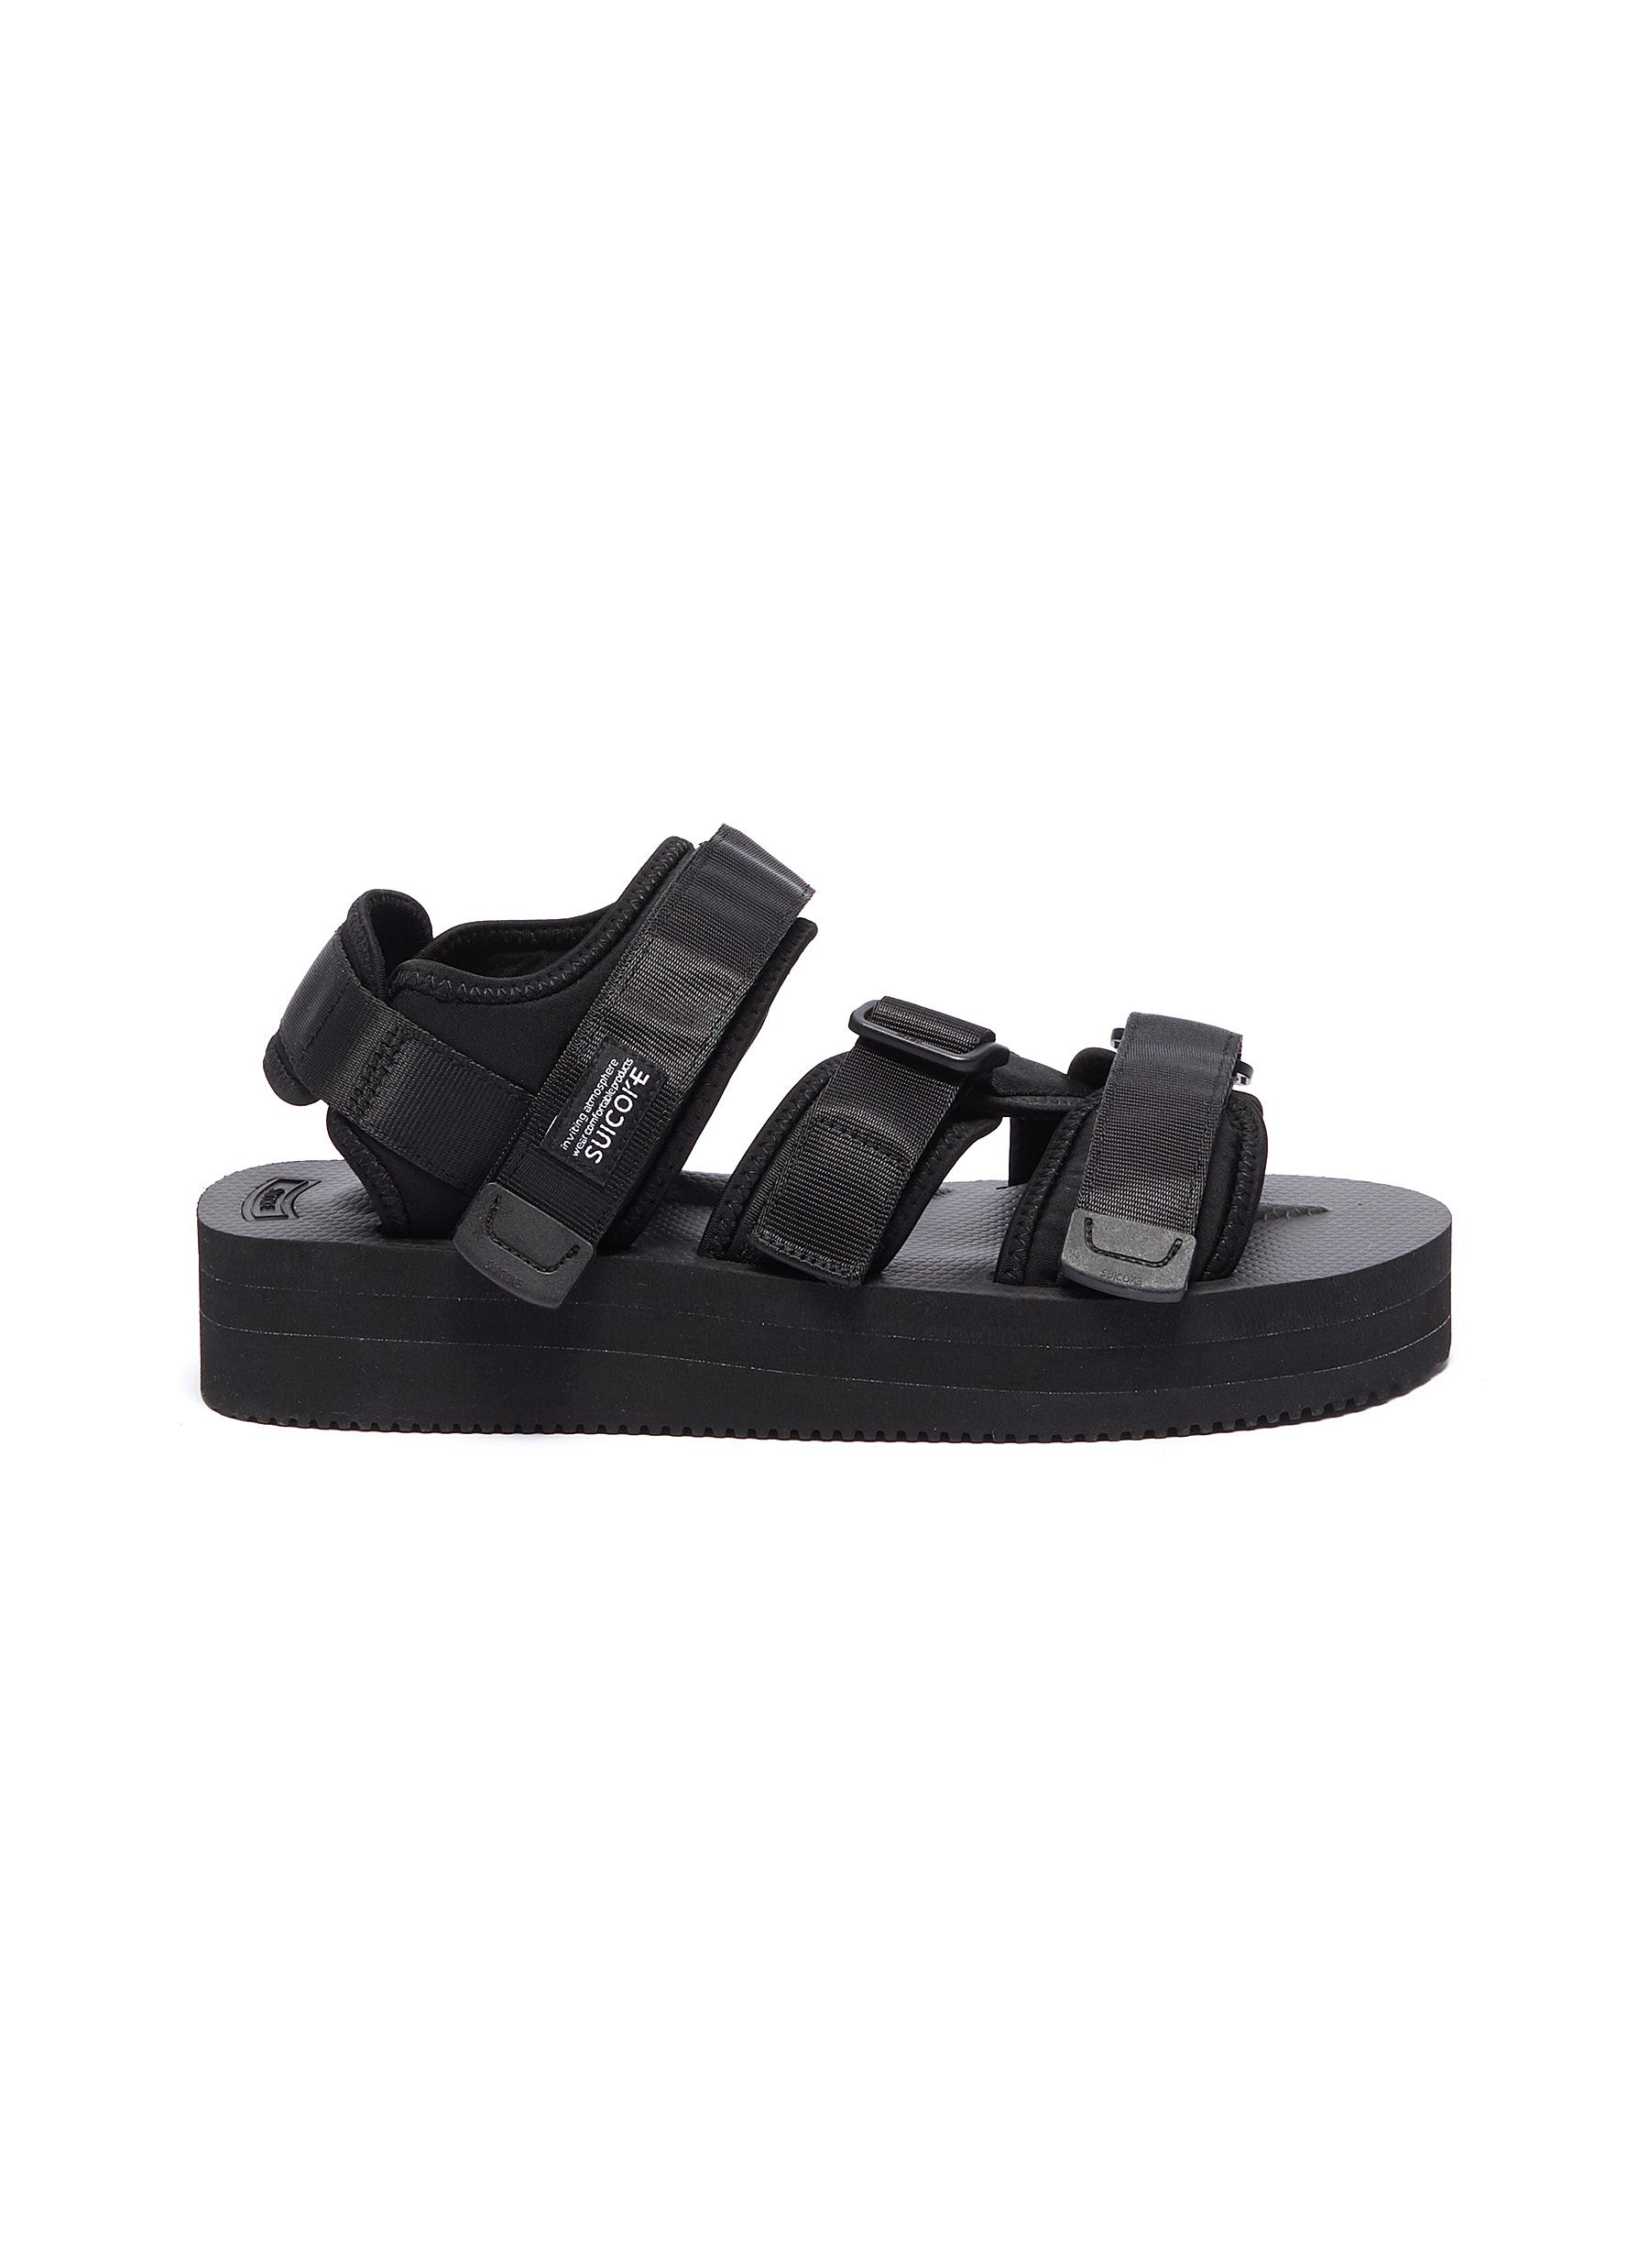 KISEE-VPO strappy platform sandals by Suicoke